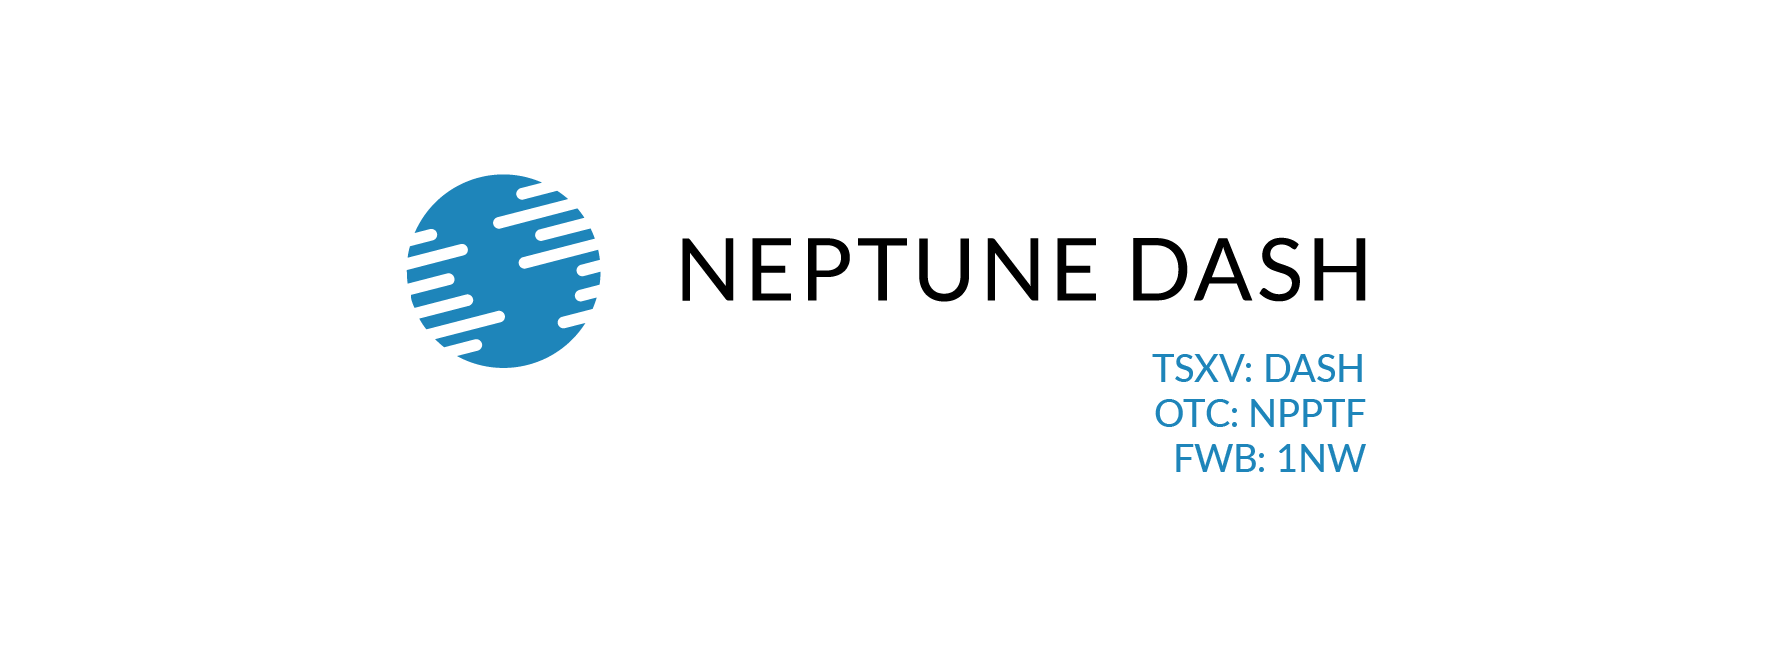 Neptune Dash Technologies Secures up to $4 Million Equity Facility with New York Private Equity Firm Alumina Partners LLC